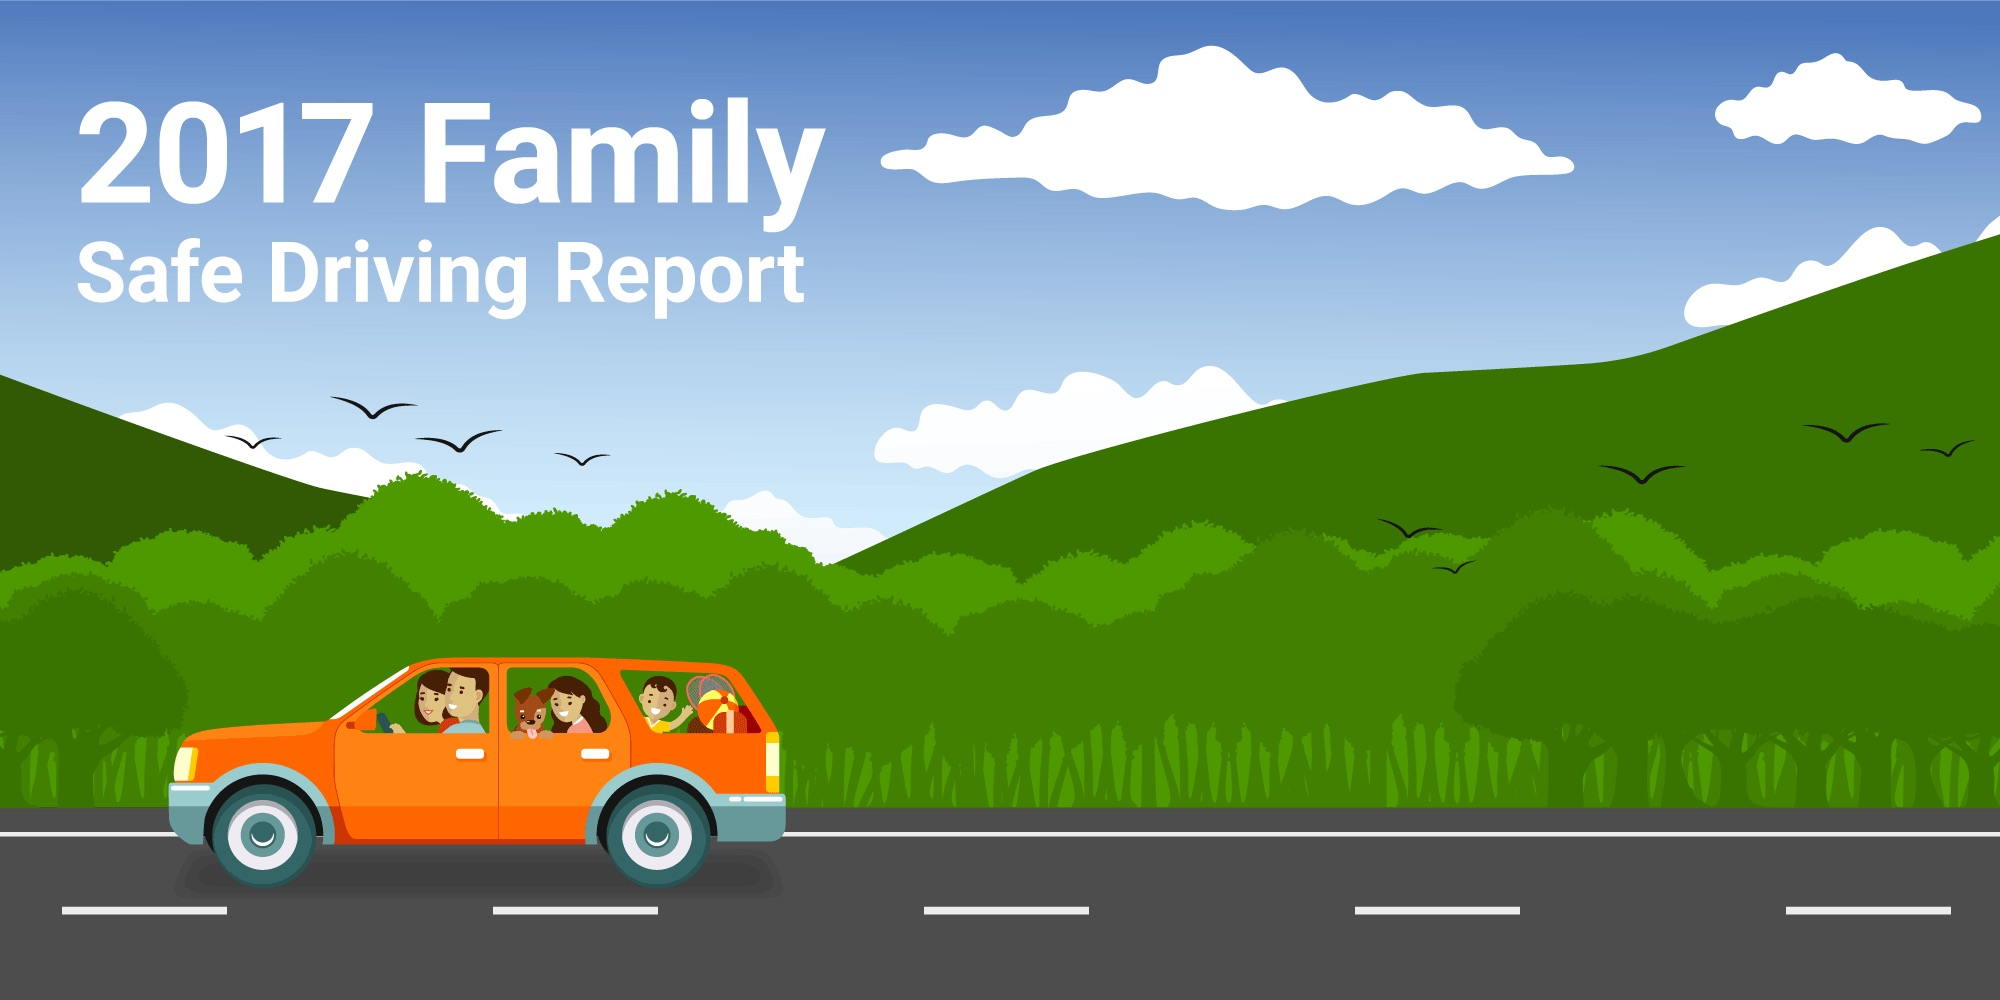 2017 family safe driving report